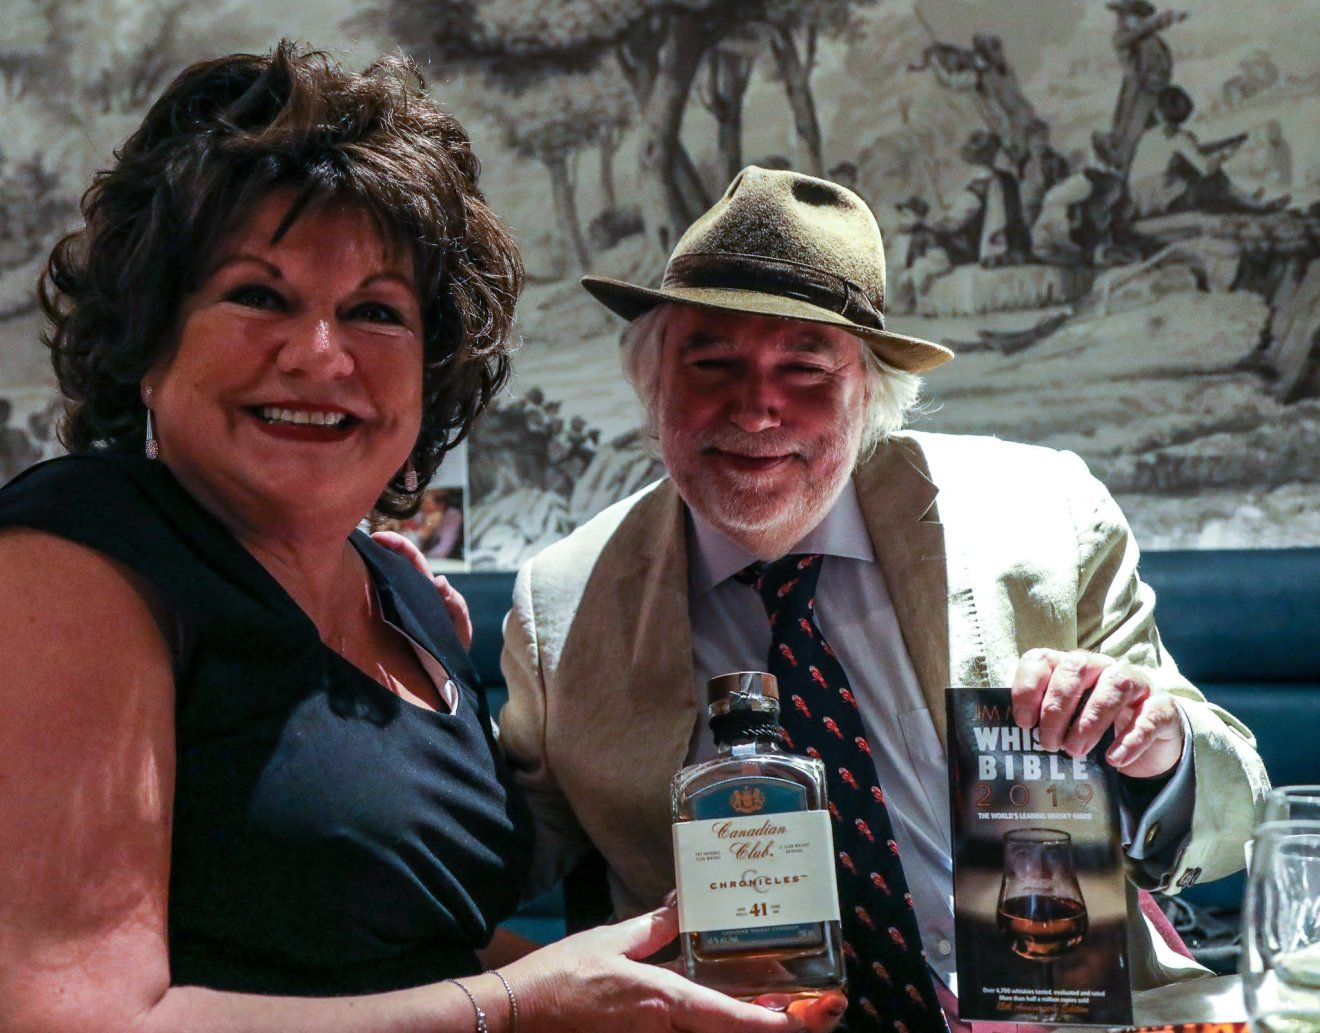 Canadian Club Global Brand Ambassador Tish Harcus, and Jim Murray of the Whisky Bible